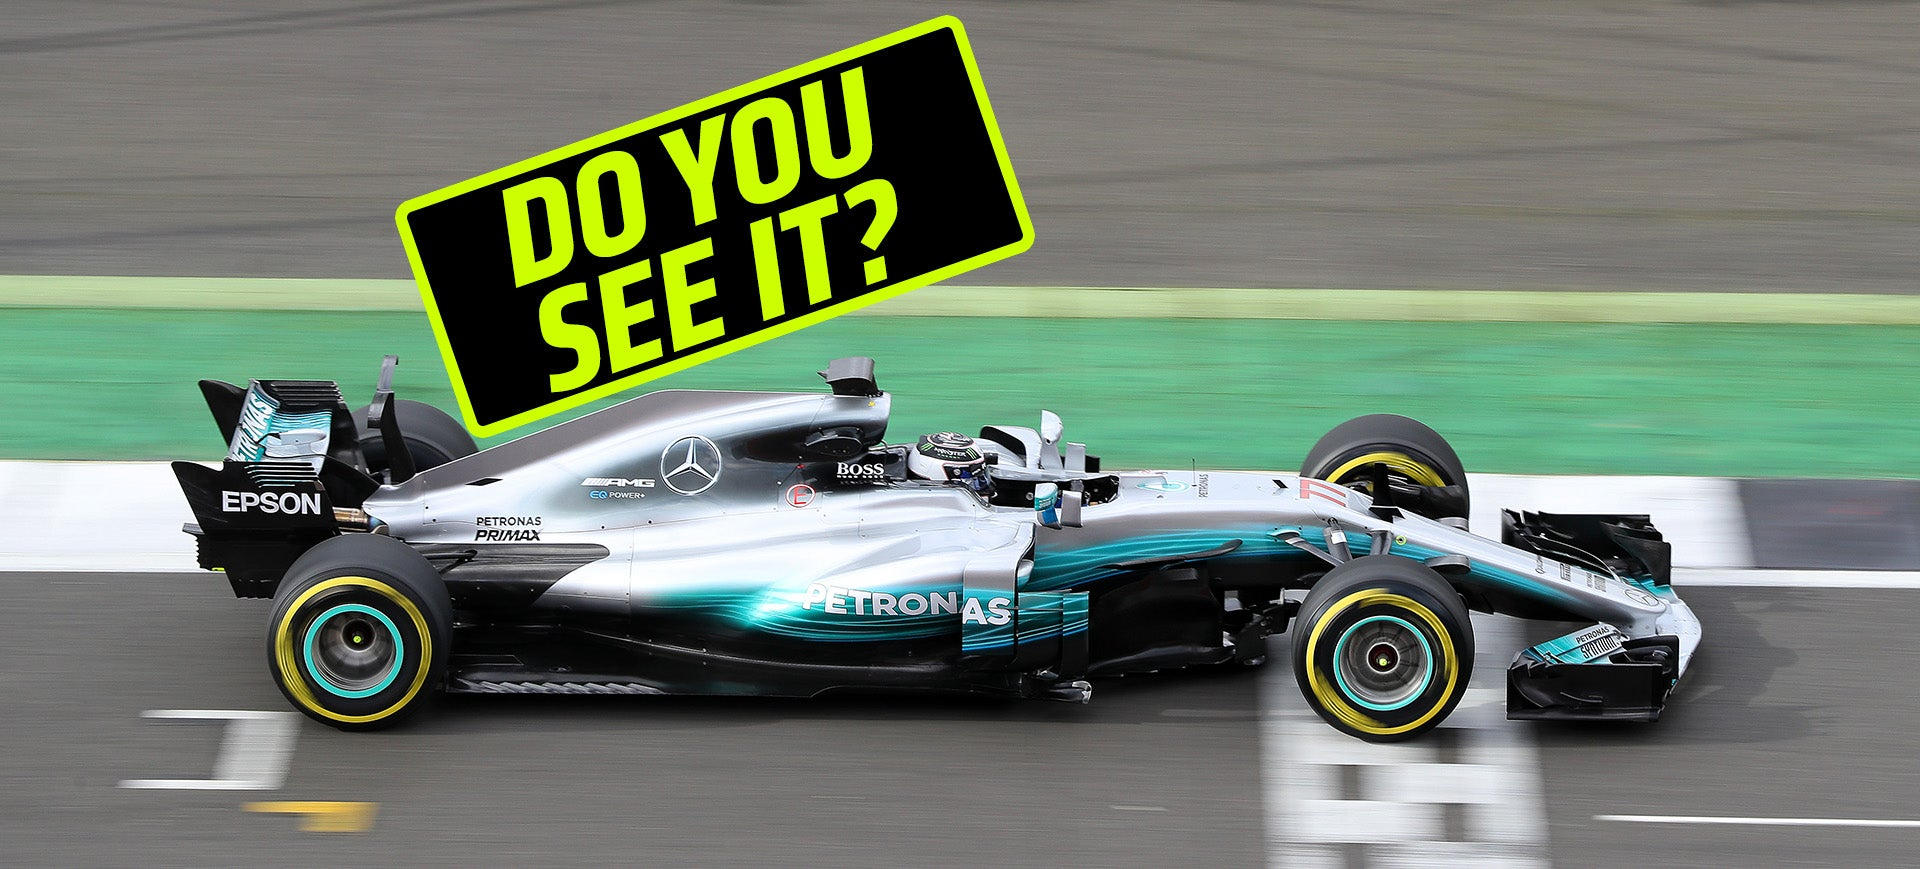 Mercedes May Have Already Found A Loophole In F1's New Regs